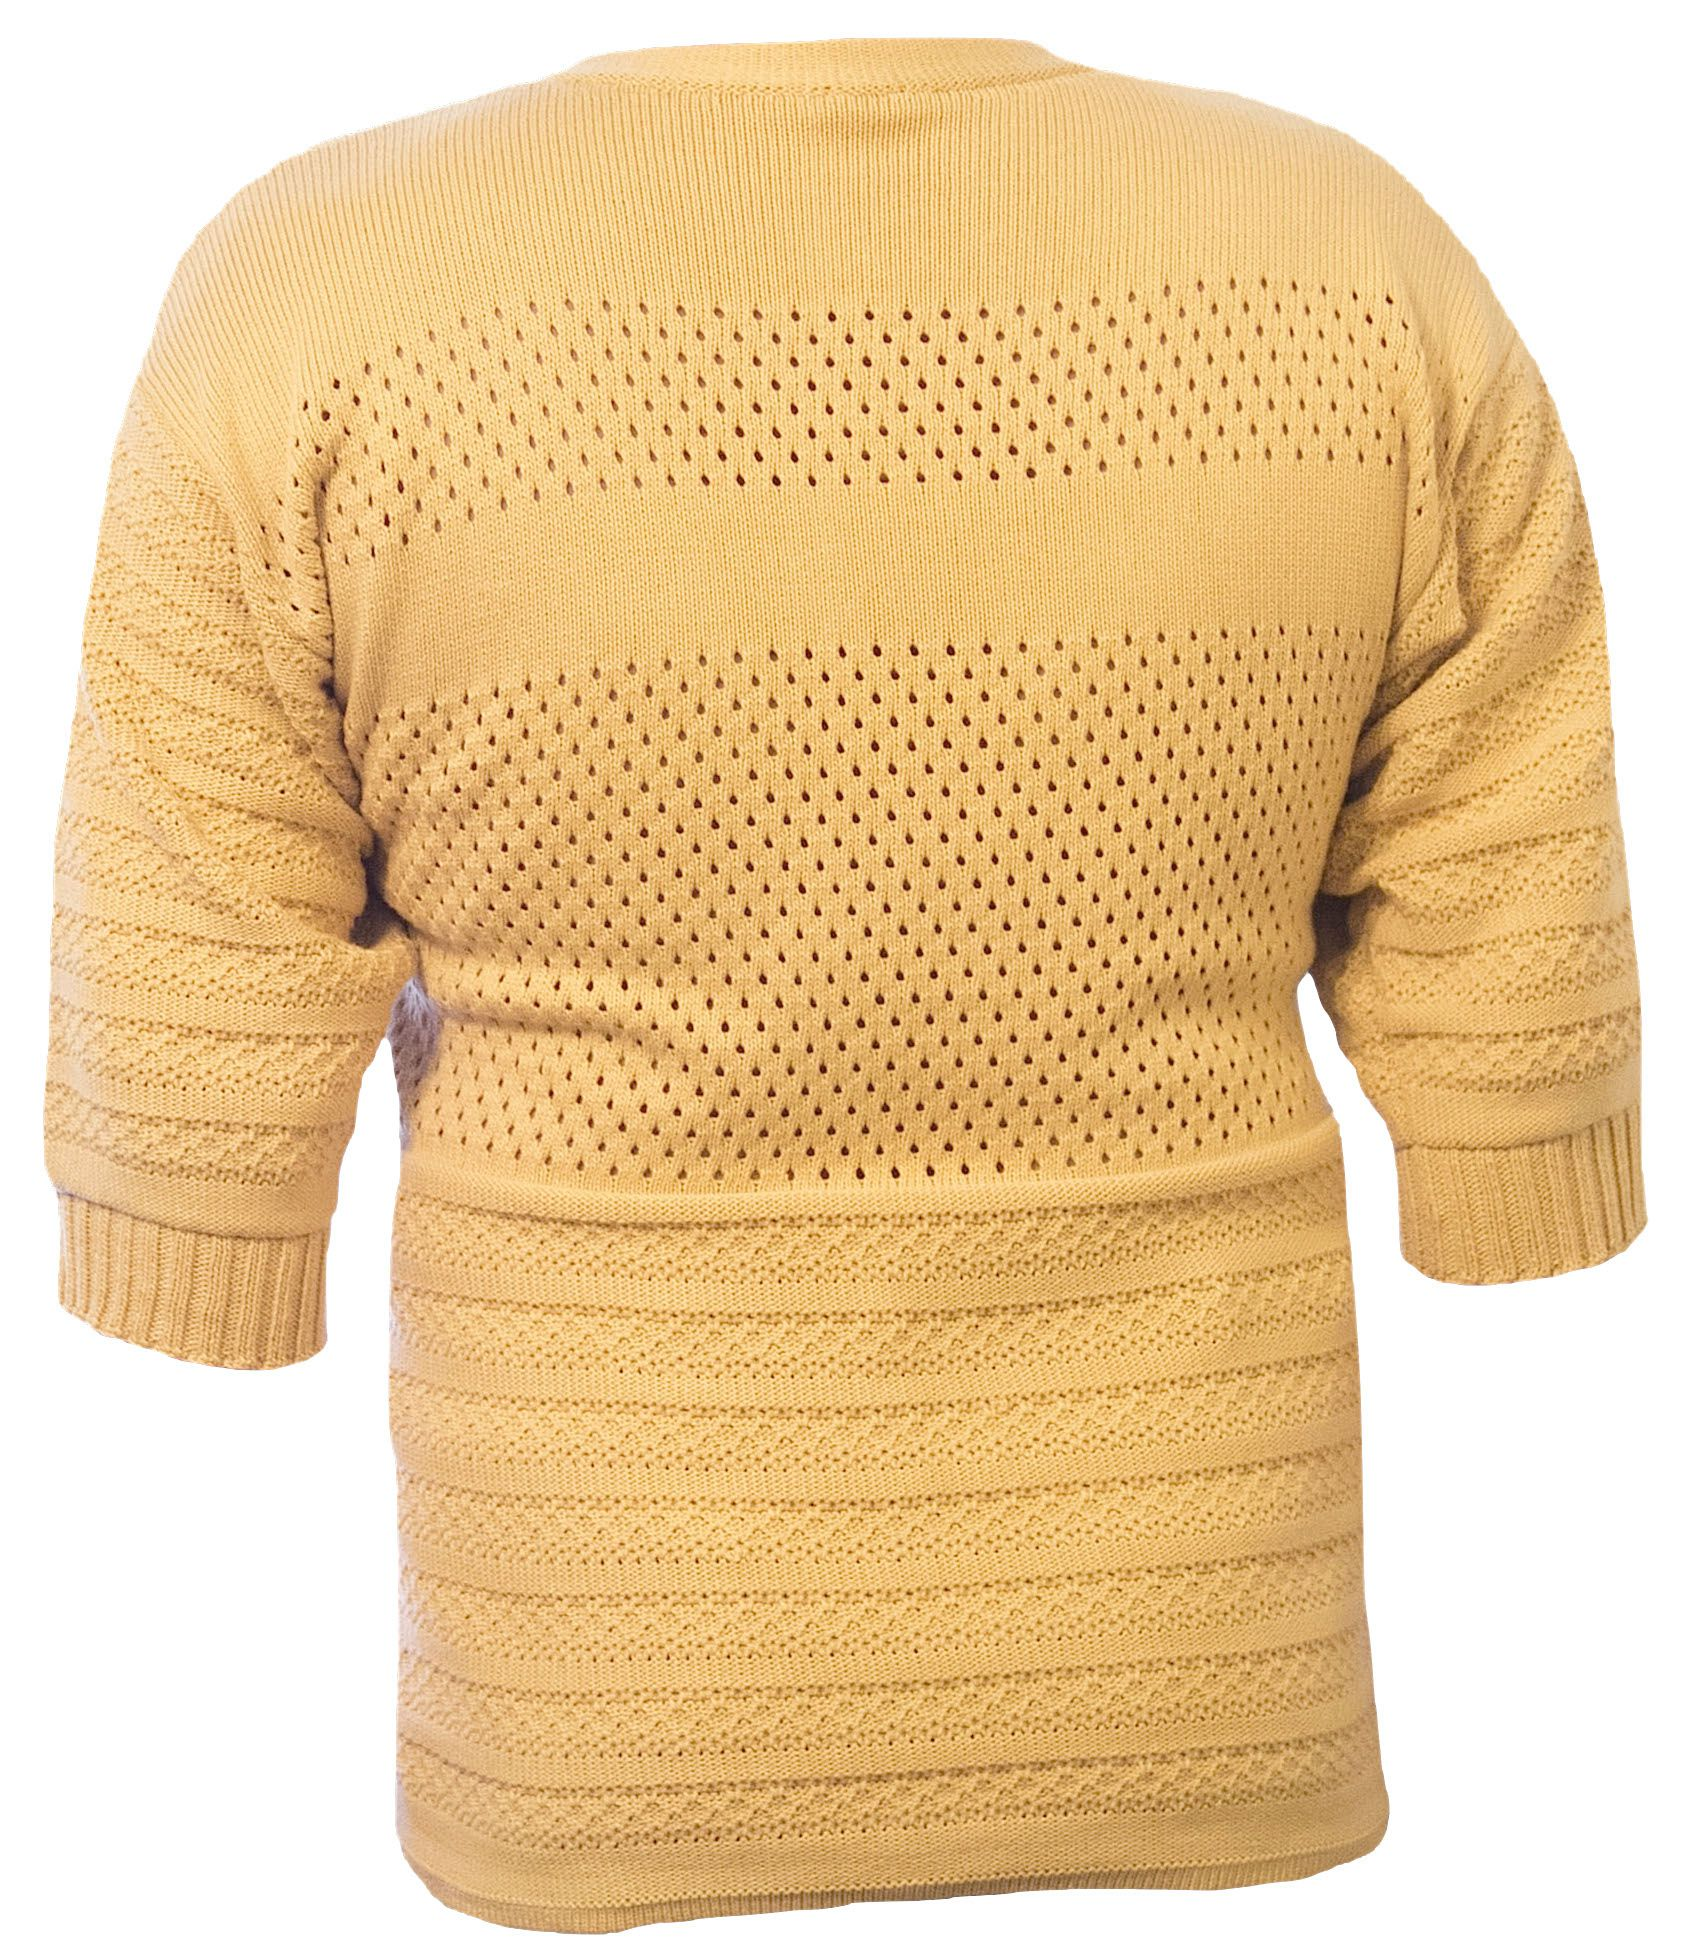 knitted cotton tunic sweater